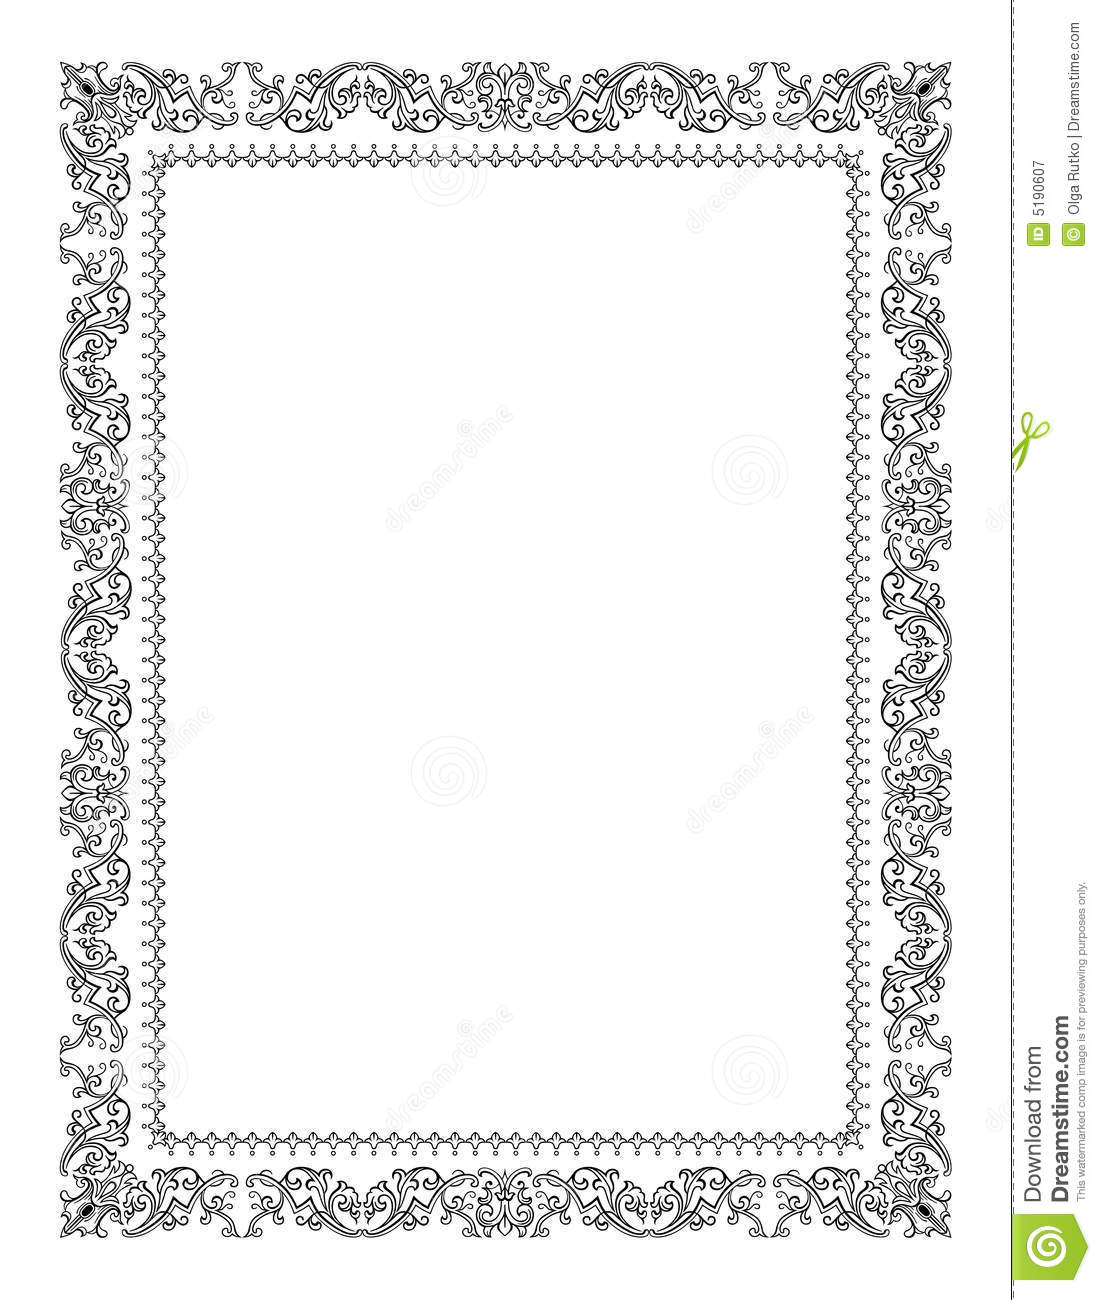 20 Royalty Free Vector Frame Images - Vector Borders and Frames Free ...